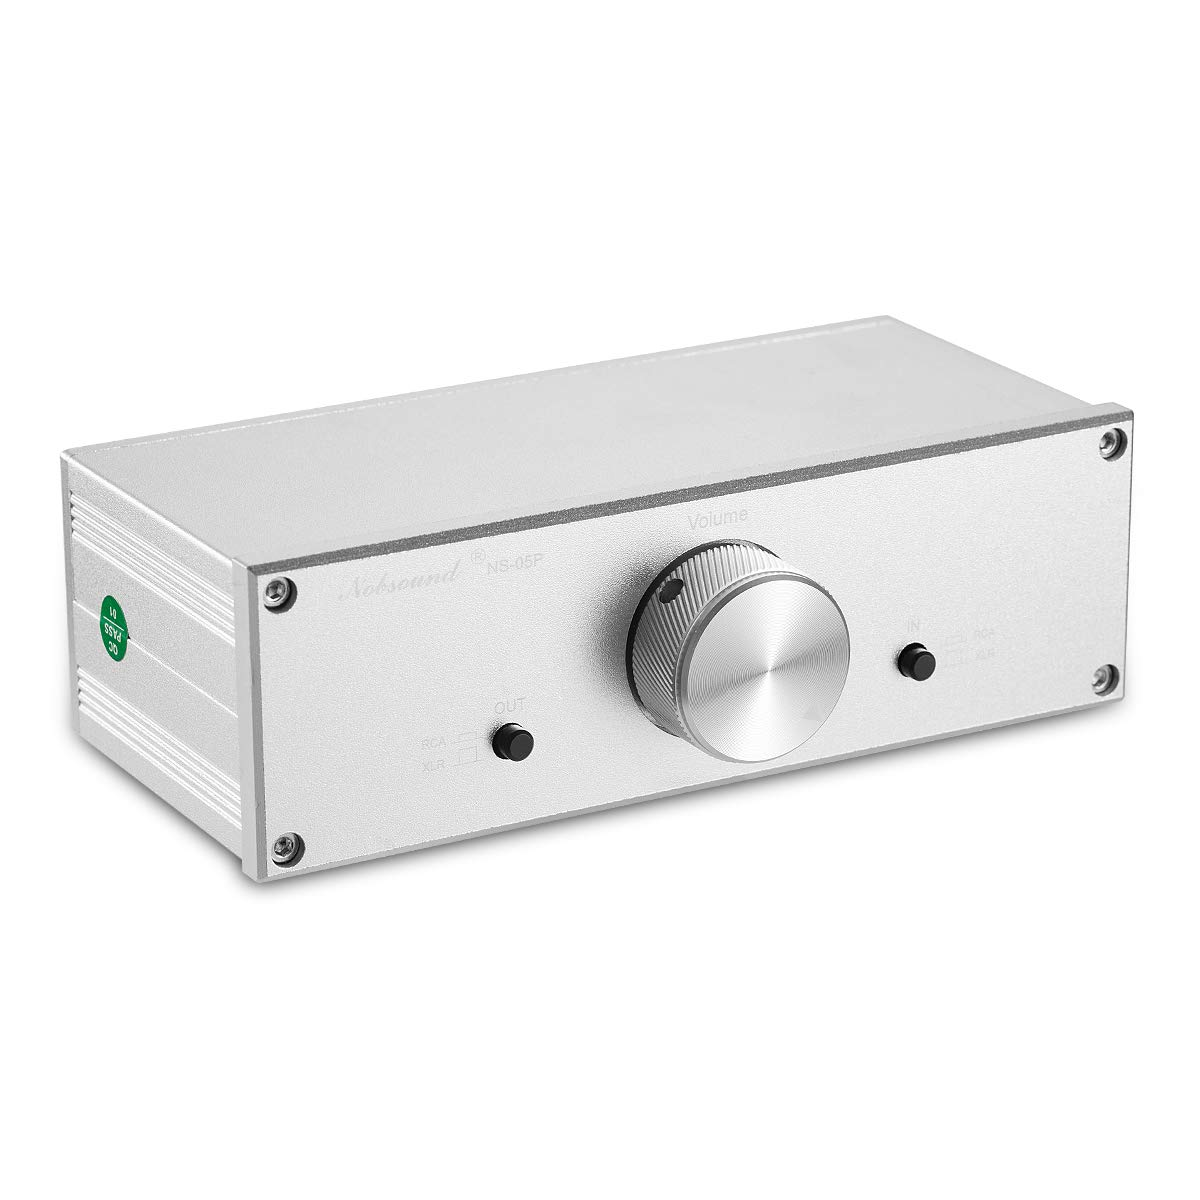 Nobsound Mini Fully-Balanced//Single-Ended Passive Preamp; Hi-Fi Pre-Amplifier; XLR//RCA Volume Controller for Active Monitor Speakers Silver